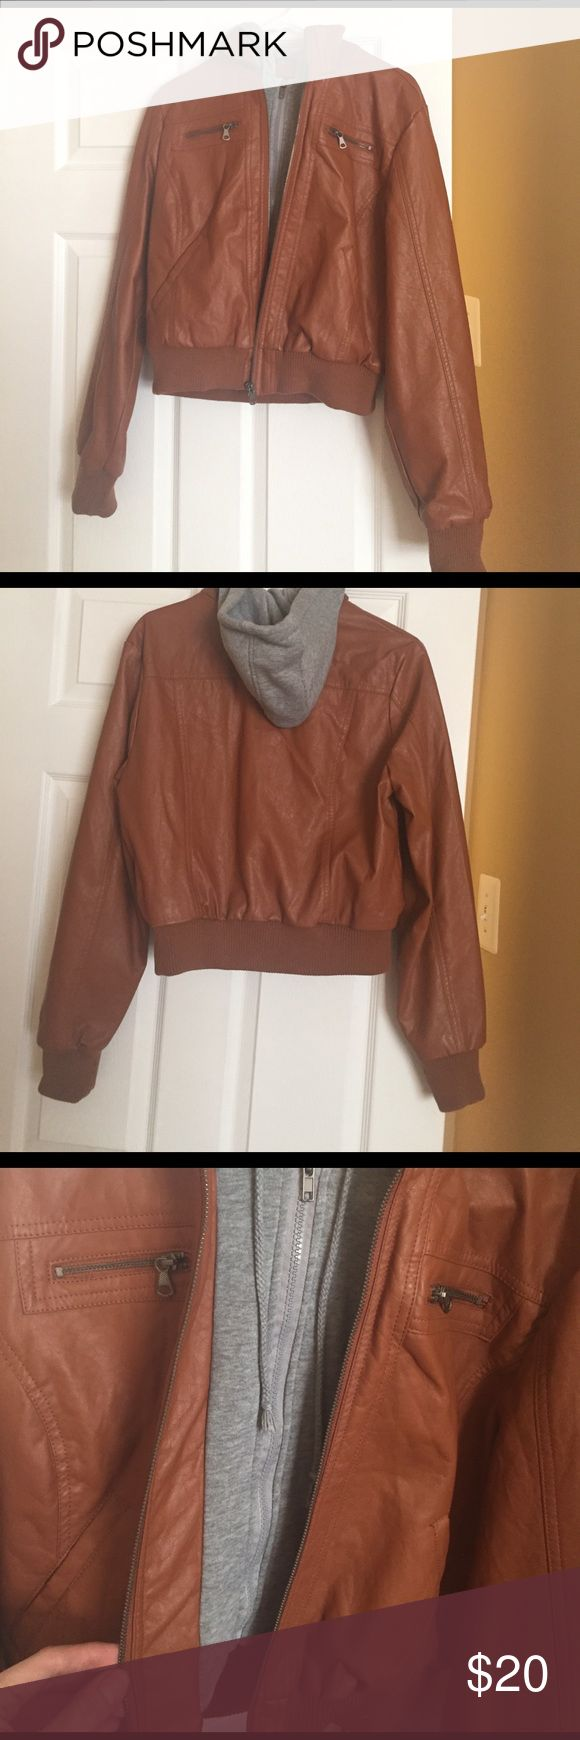 """Hooded leather jacket Adorable """"leather"""" jacket with hood. It has a double zipper detail for a layered look, both zippers fully operational. Says it's an XL but runs big as I wear a medium and could also fit a smaller Large if that makes sense! Perfect condition, only tried on. Just not a fan of the color on me ): Deb Jackets & Coats Utility Jackets"""